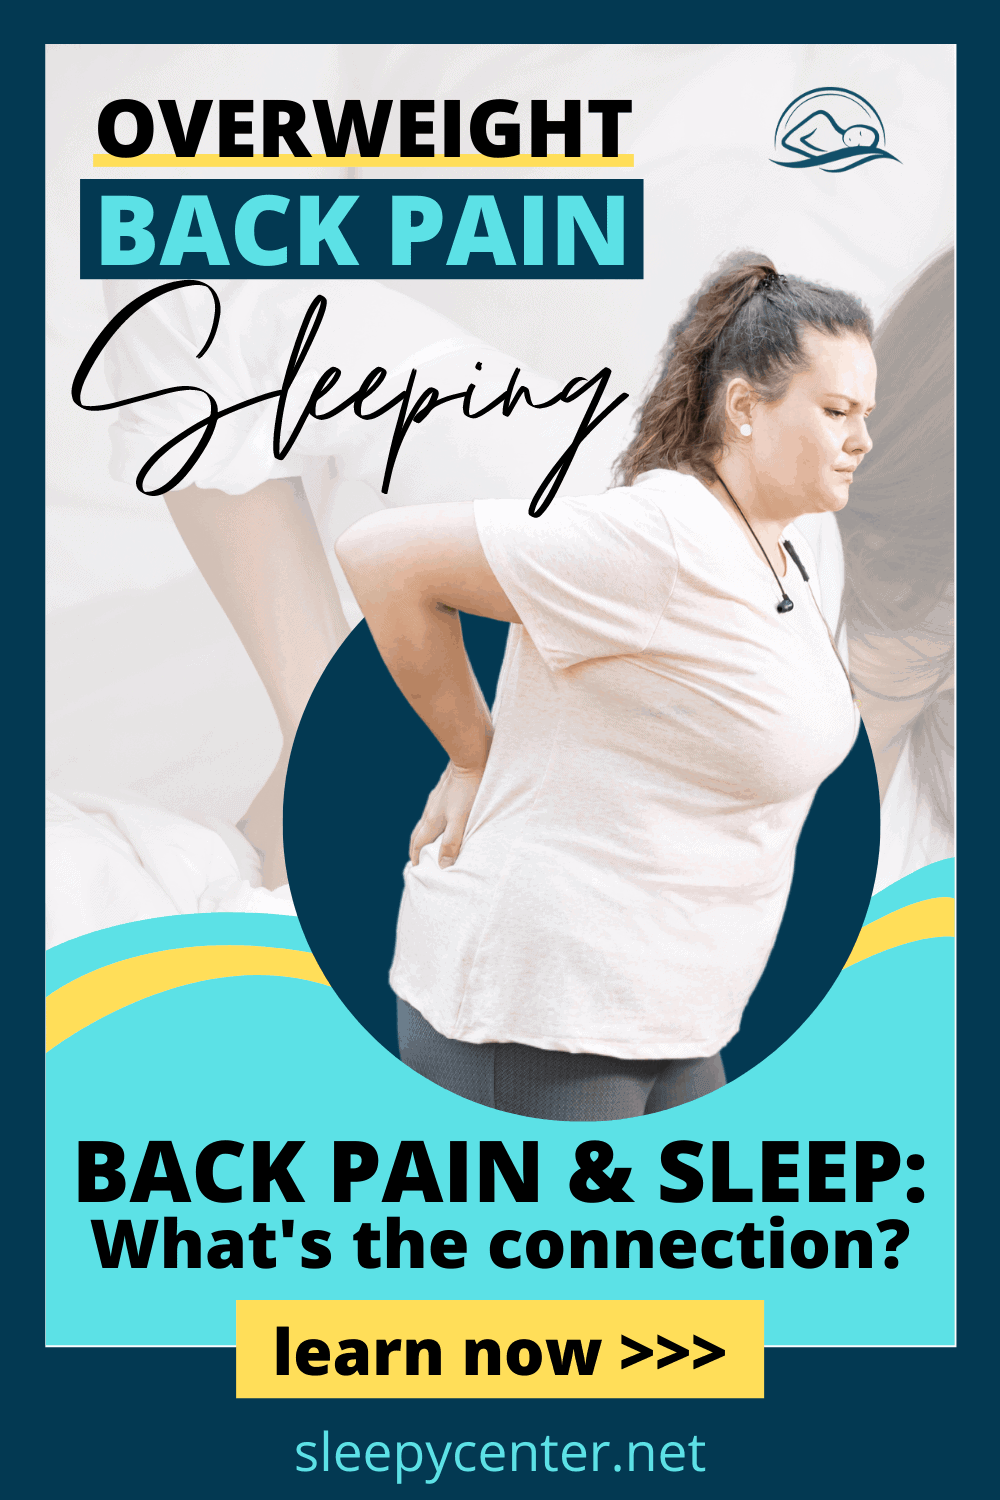 Overweight back pain sleeping (3)